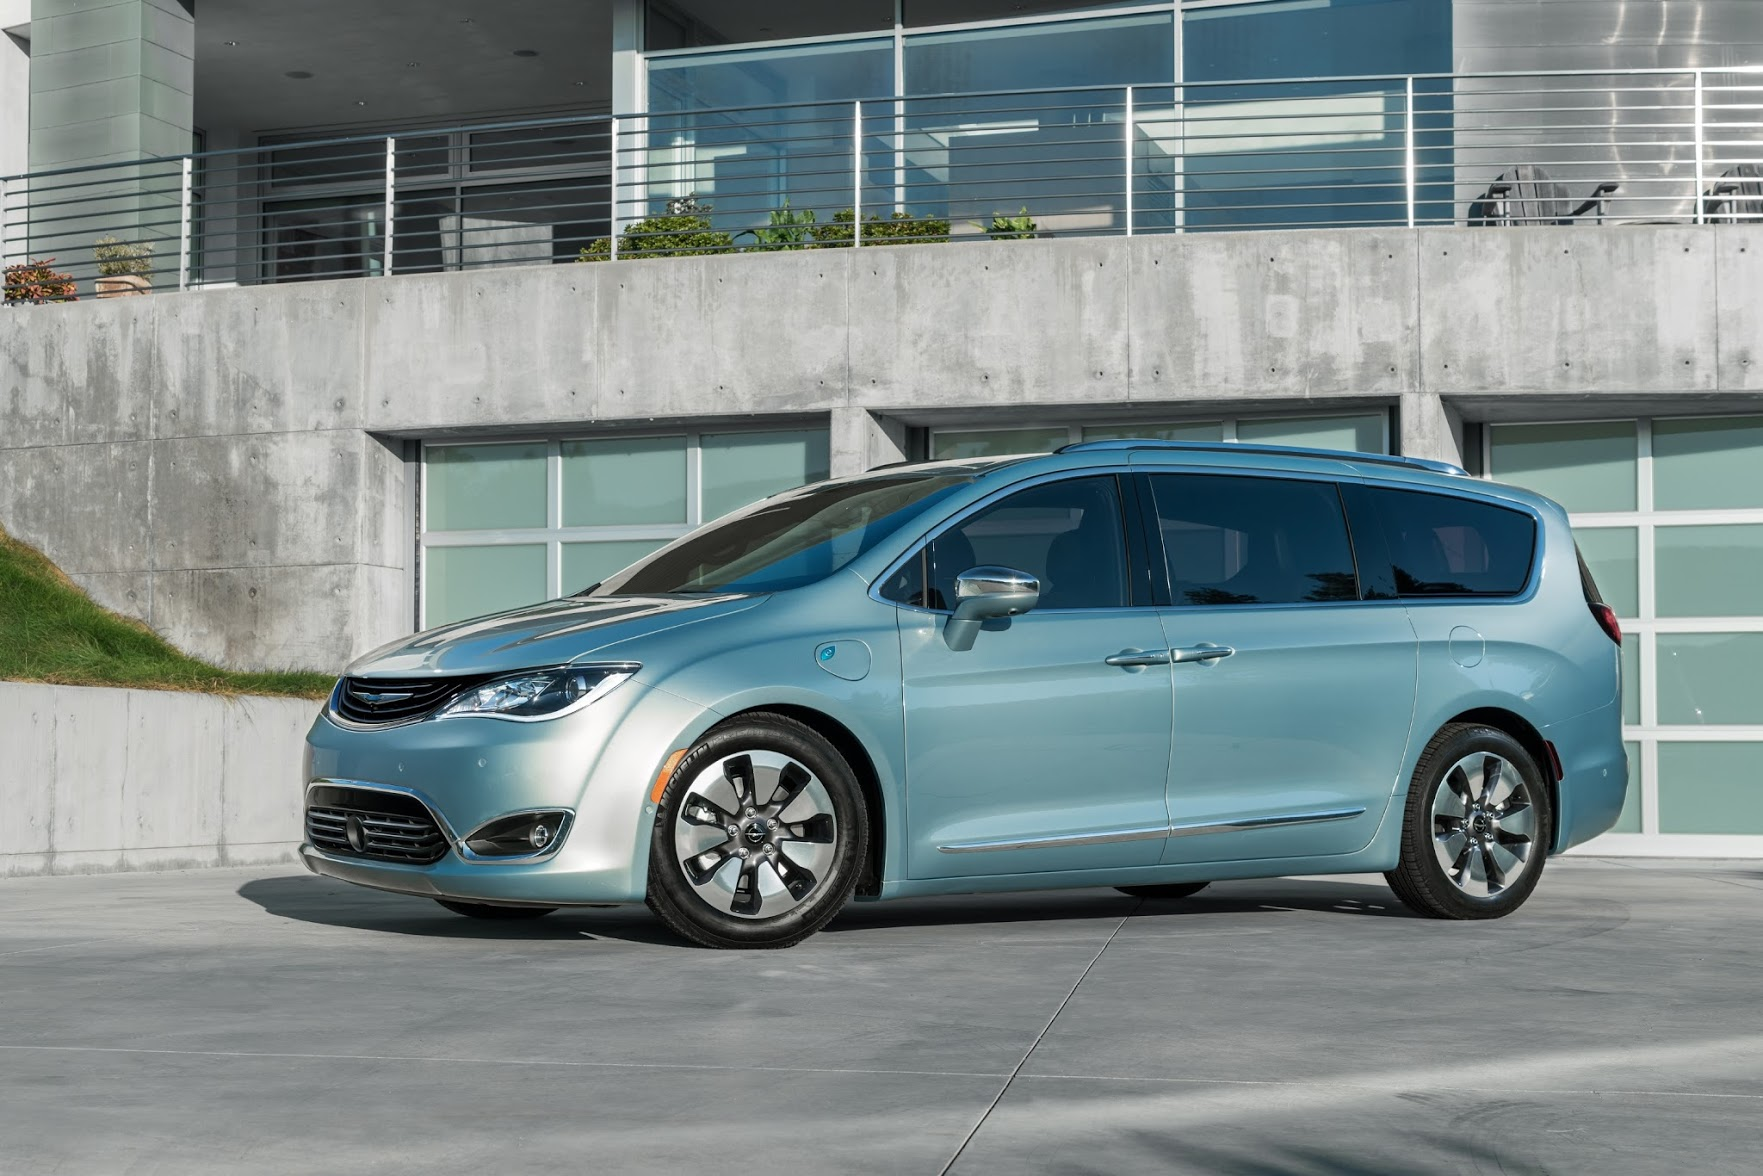 Fiat Chrysler Build A Hybrid Minivan